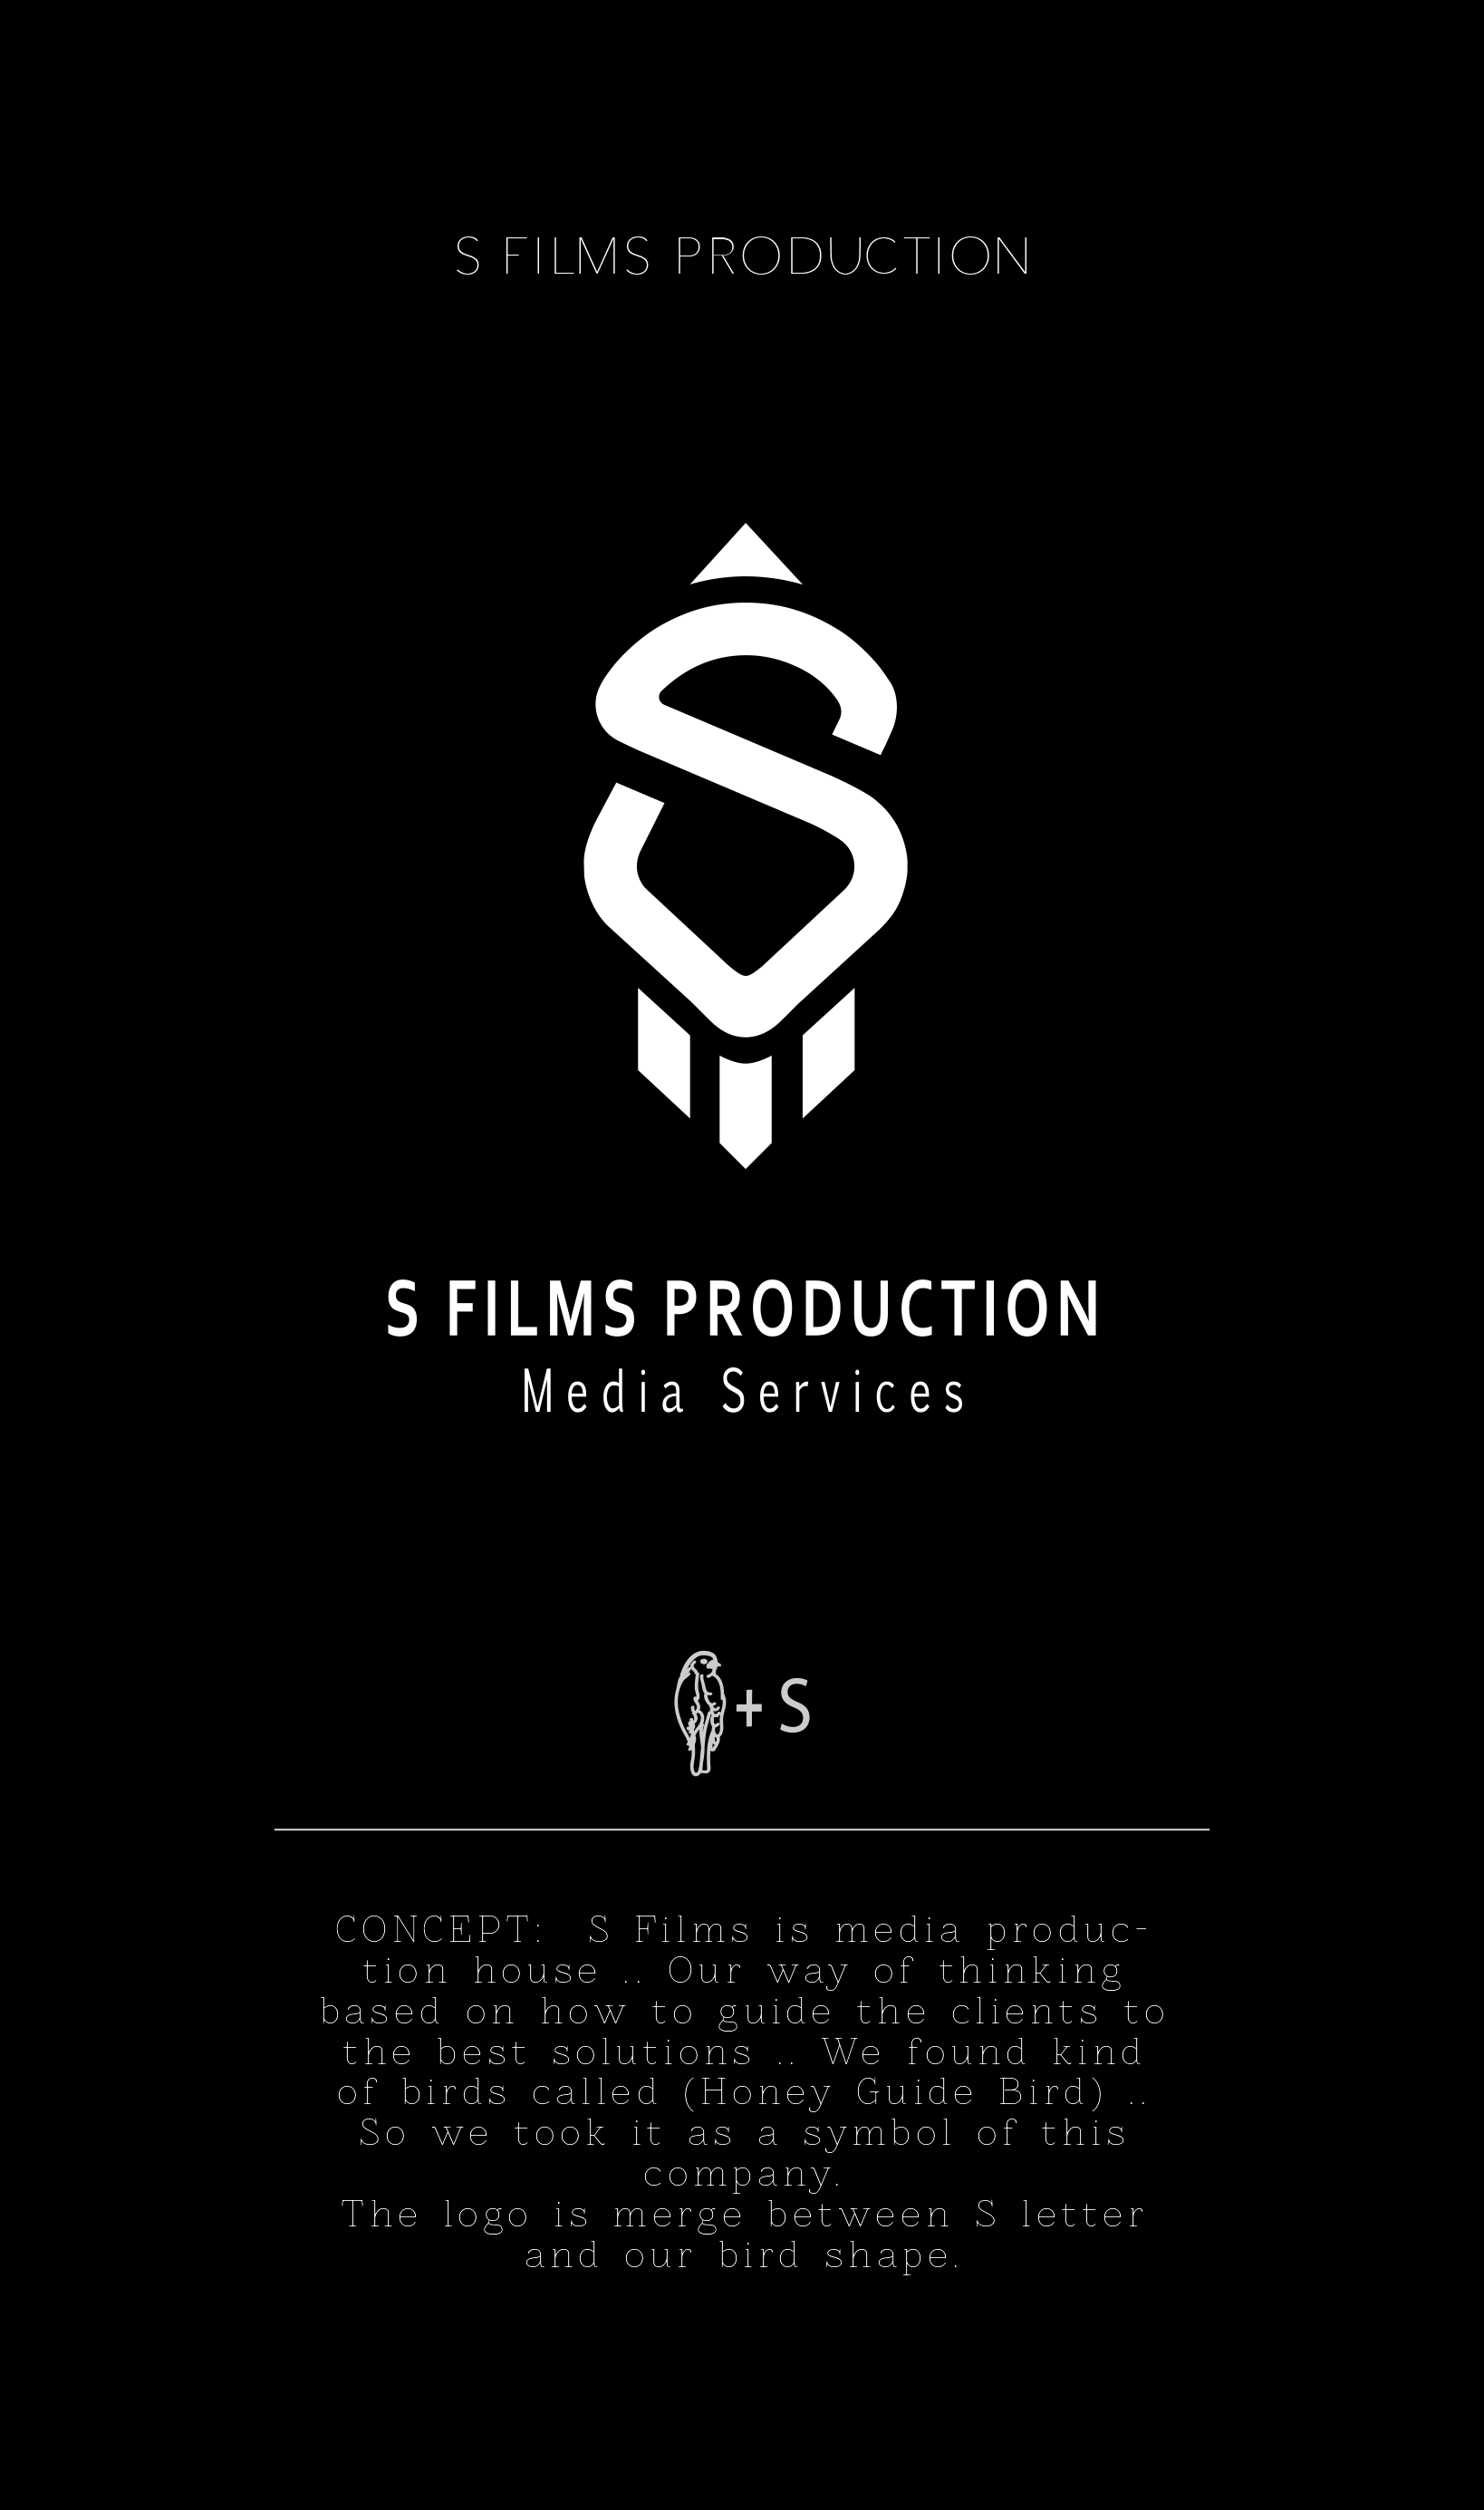 S films production concept s films is media production house s films production concept s films is media production house our way of thinking based on how to guide the clients to the best solutions biocorpaavc